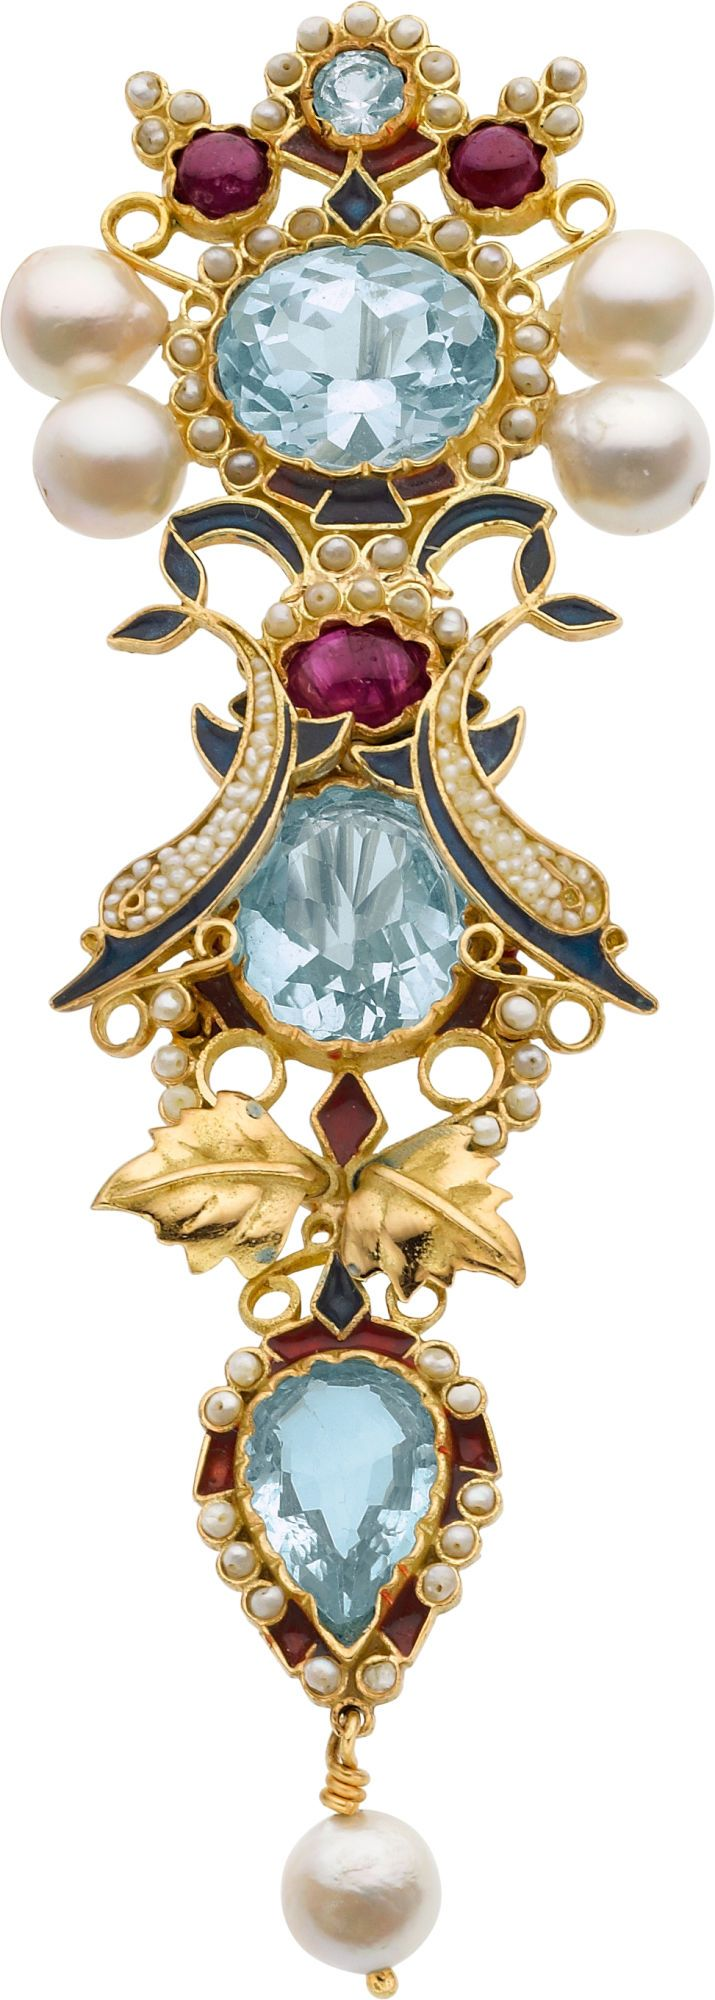 A Jaw Dropping Gorgeous Jewel - Gold, Pearls, Rubies, Light Sapphire or Aquamarine and Enamel *(must look for info... by whom/when & where?)*♥≻★≺♥